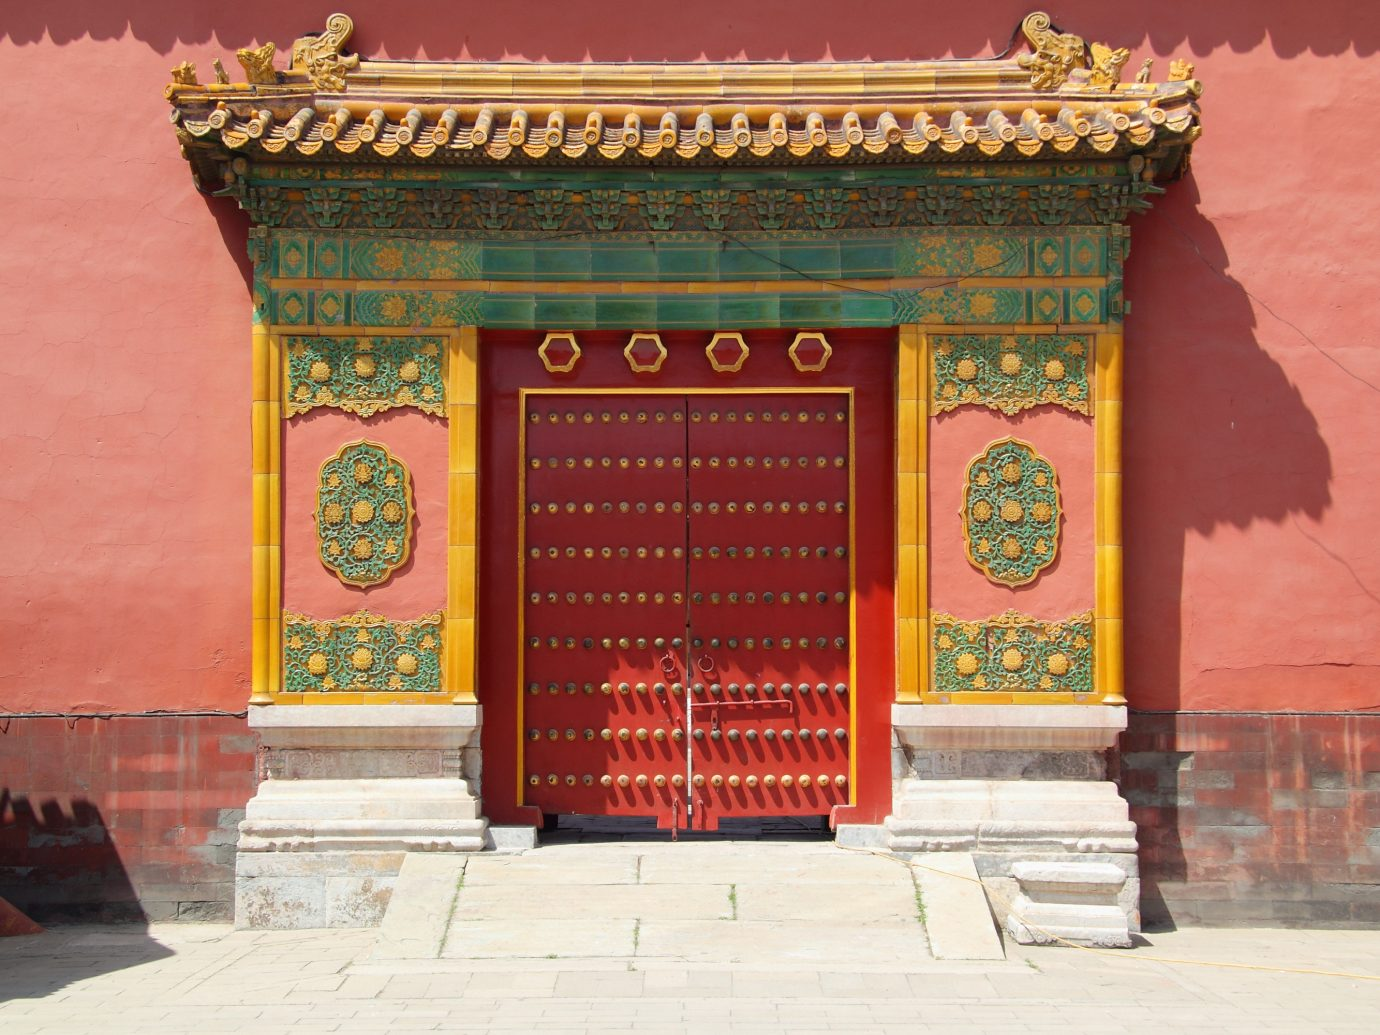 Offbeat outdoor building sidewalk place of worship hindu temple shrine temple palace colorful bright colored